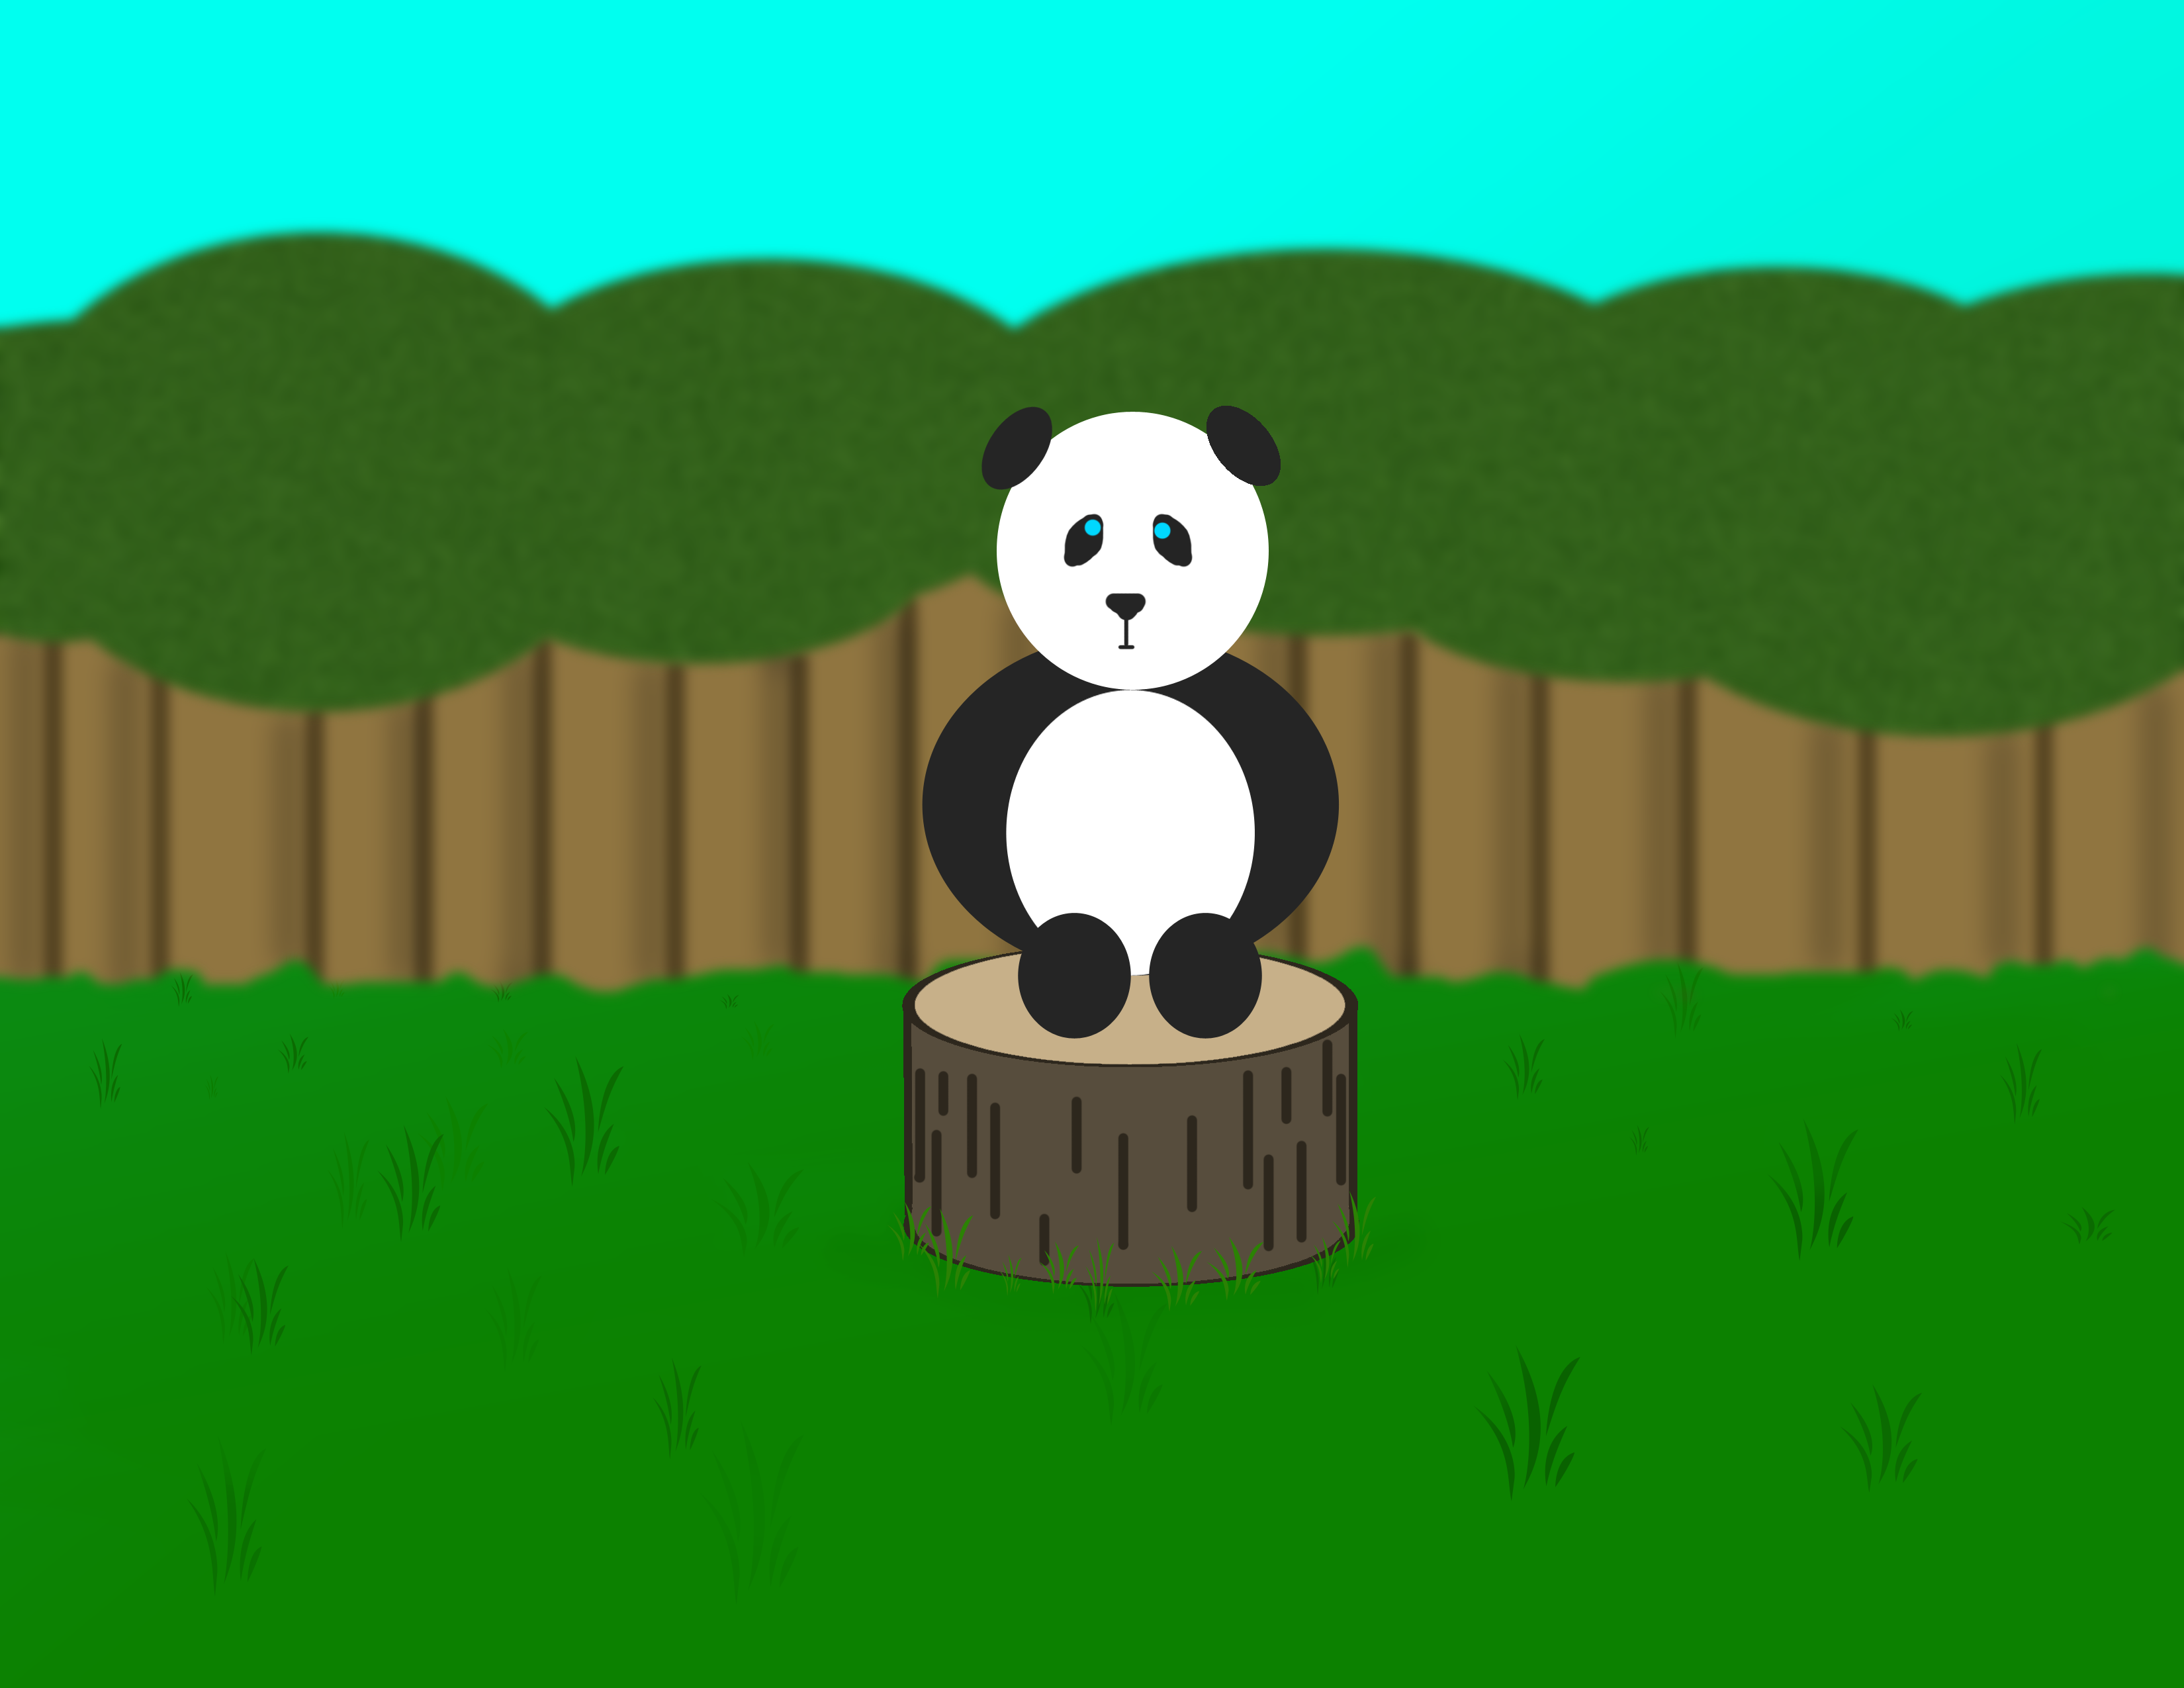 Cute Baby Panda on a Stump